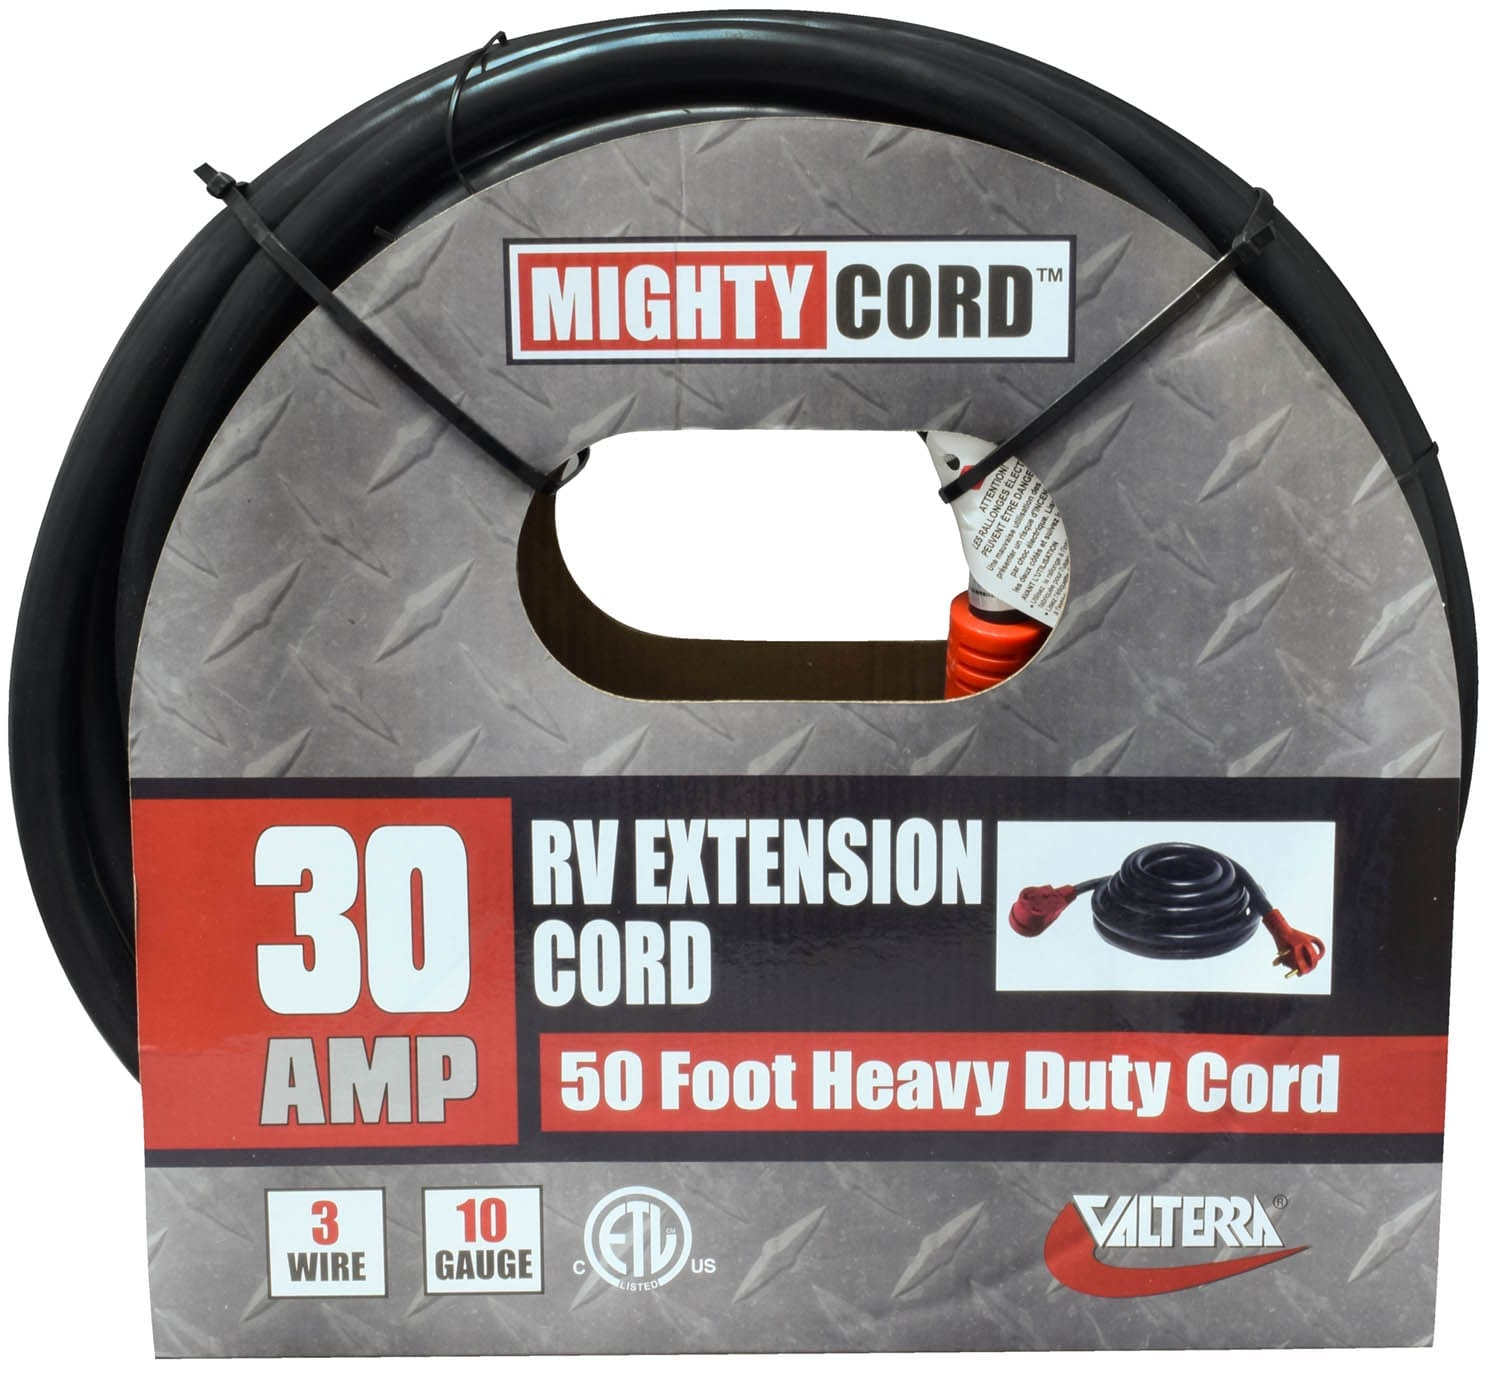 Mighty Cord 30amp Extension With Handle 50 Red Boxed Cordr Marine Electrical Parts Wiring 000